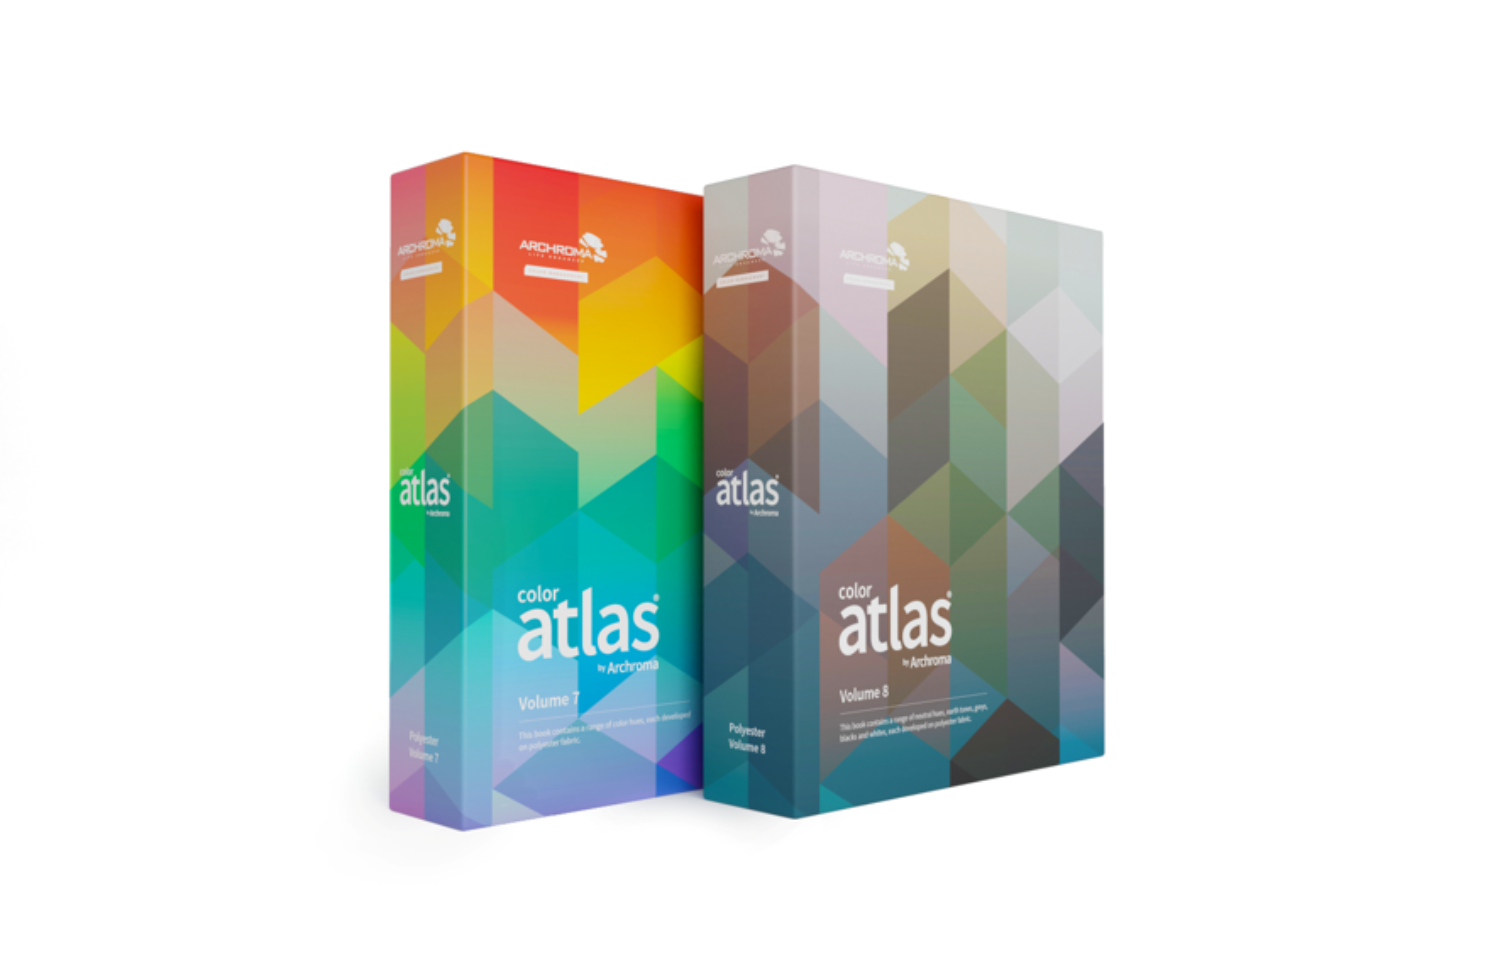 PCIAW | PCIAW News | Archroma and Carlin present the first 'colour atlas' for polyester and active wear